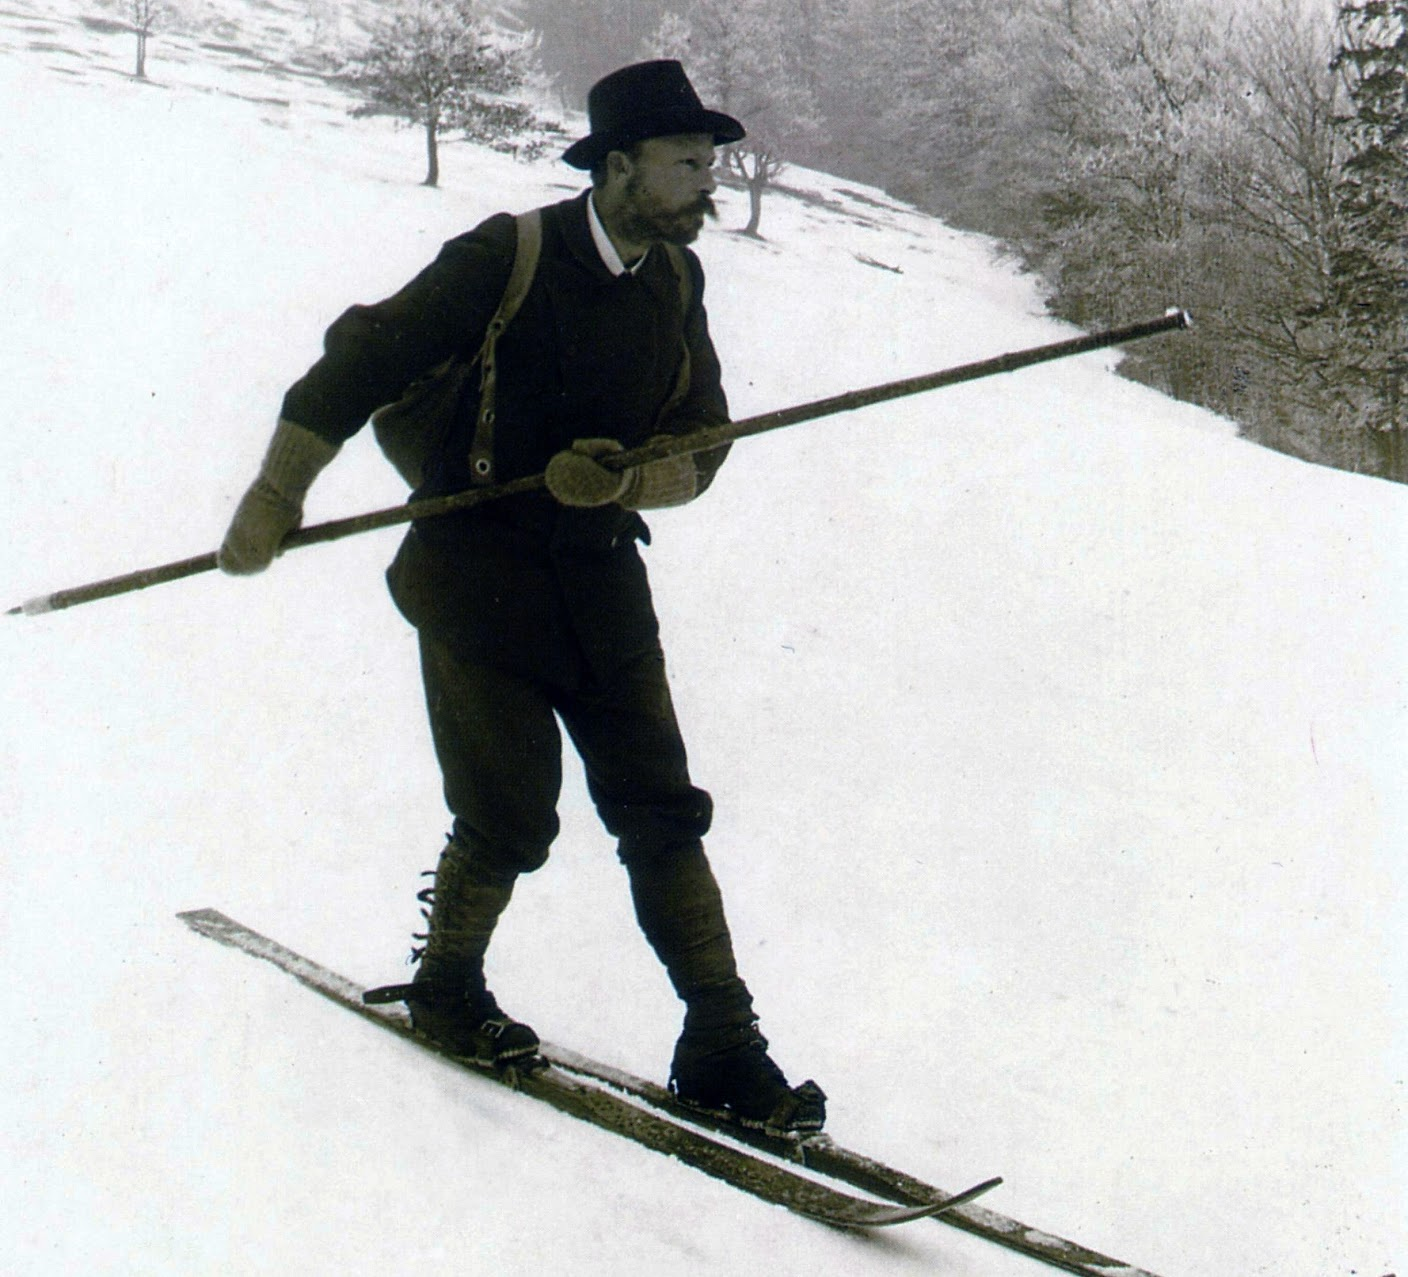 The Moravian Mathias Zdarsky demonstrating his new skiing technique (c. 1905), with unknown metrical consequences.